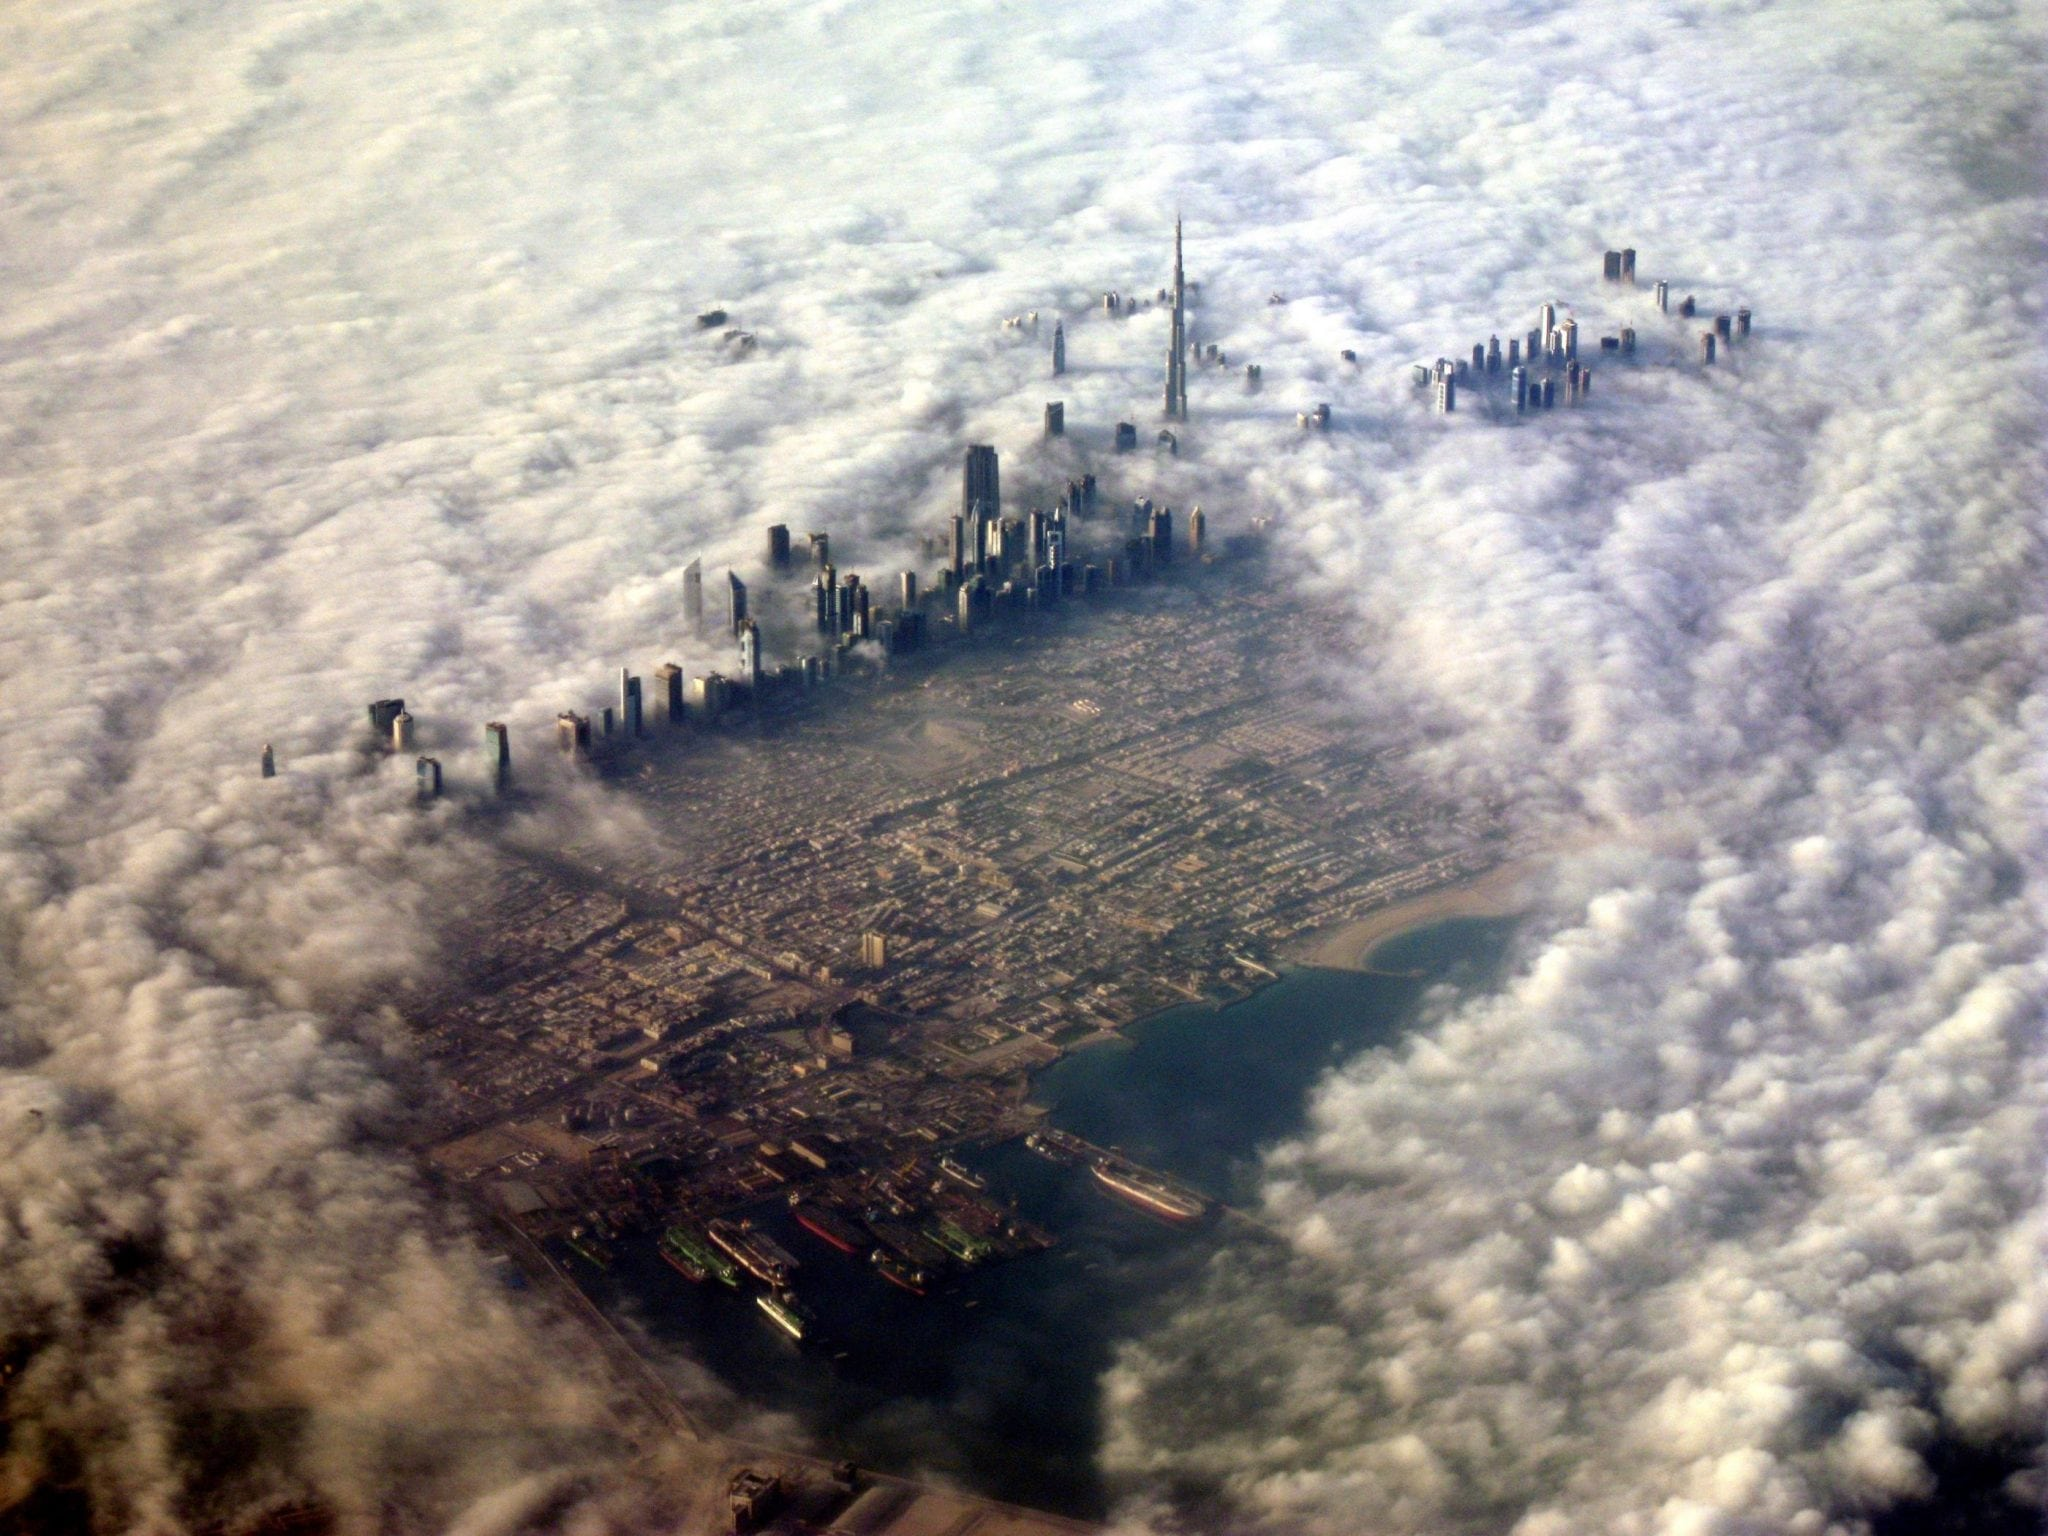 Winning Entry from UAE jpg - fog covered Dubai.